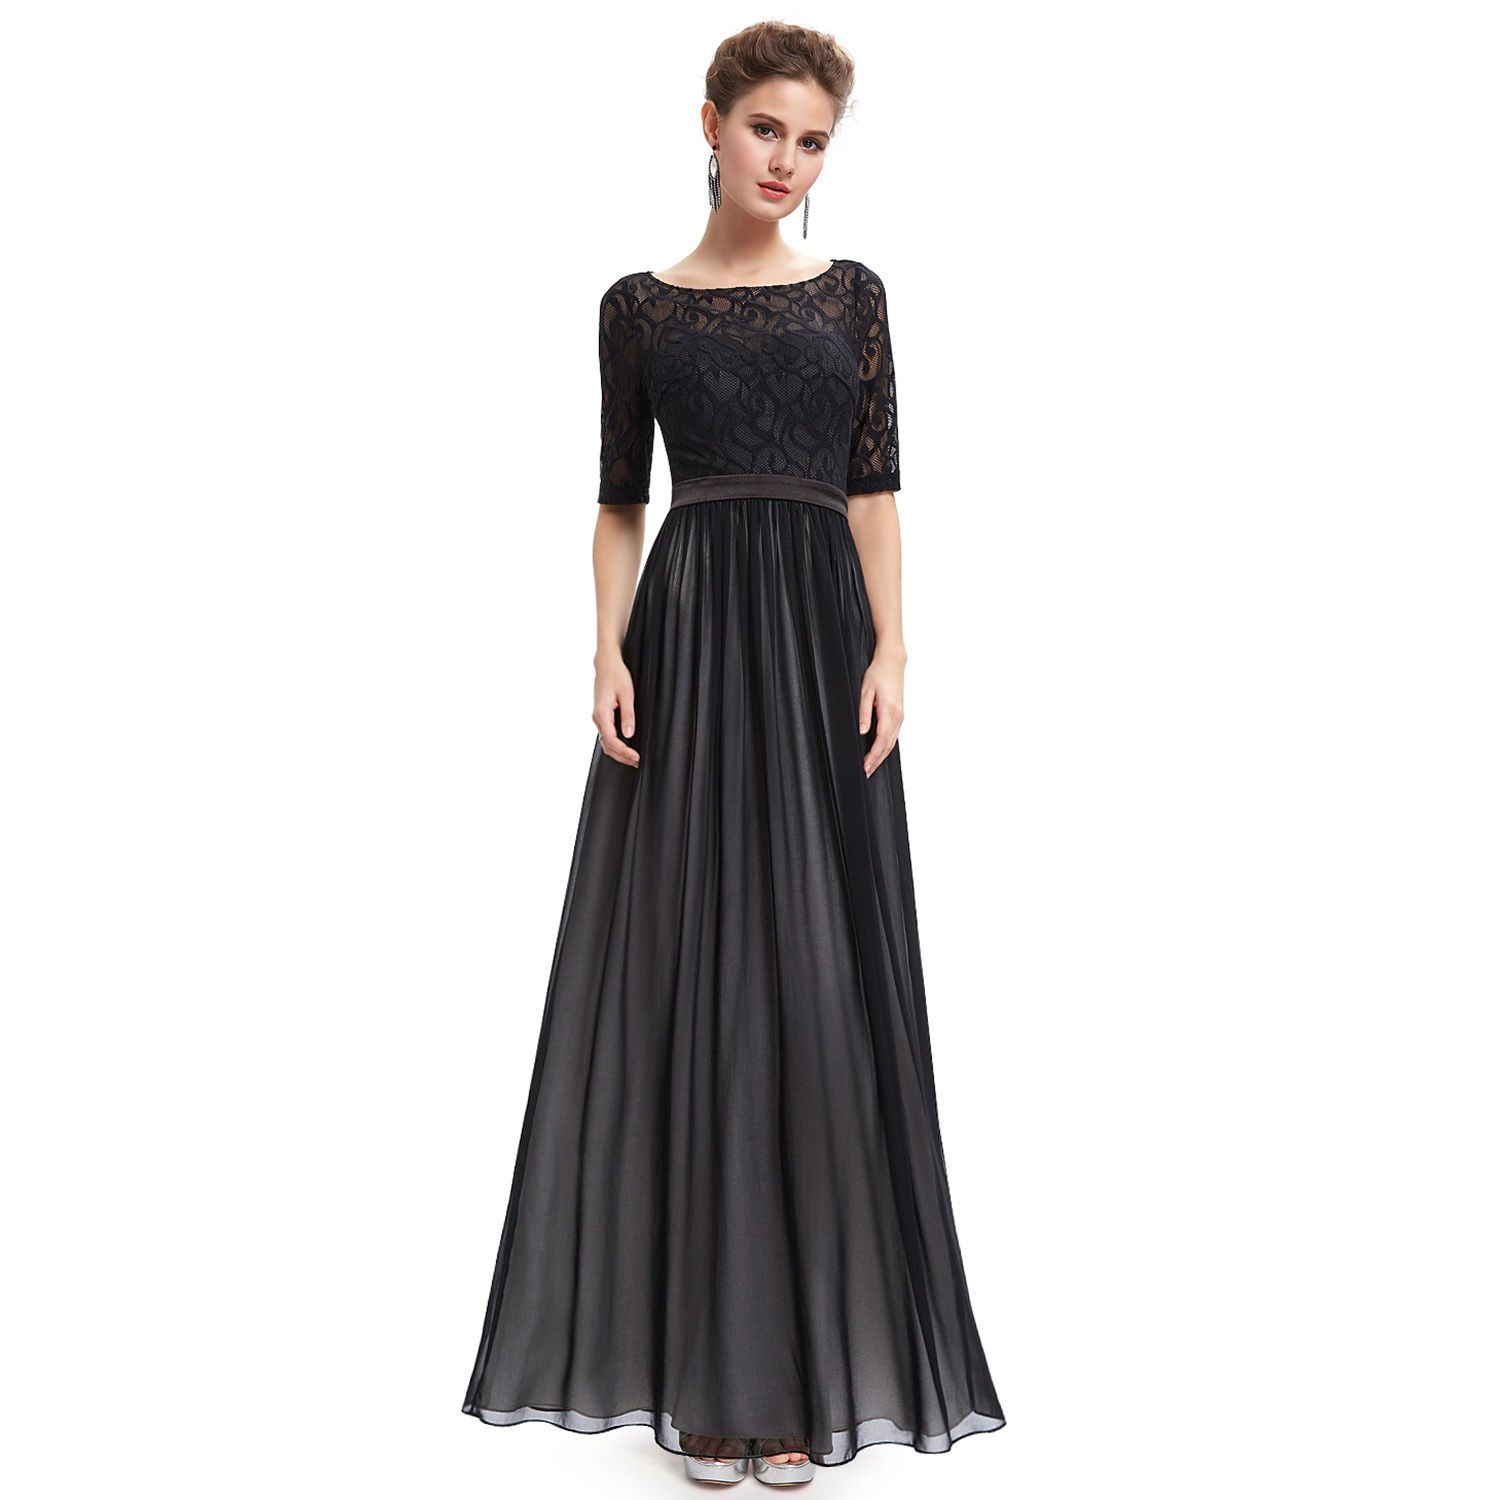 Awesome women long formal gown prom evening formal dress ever